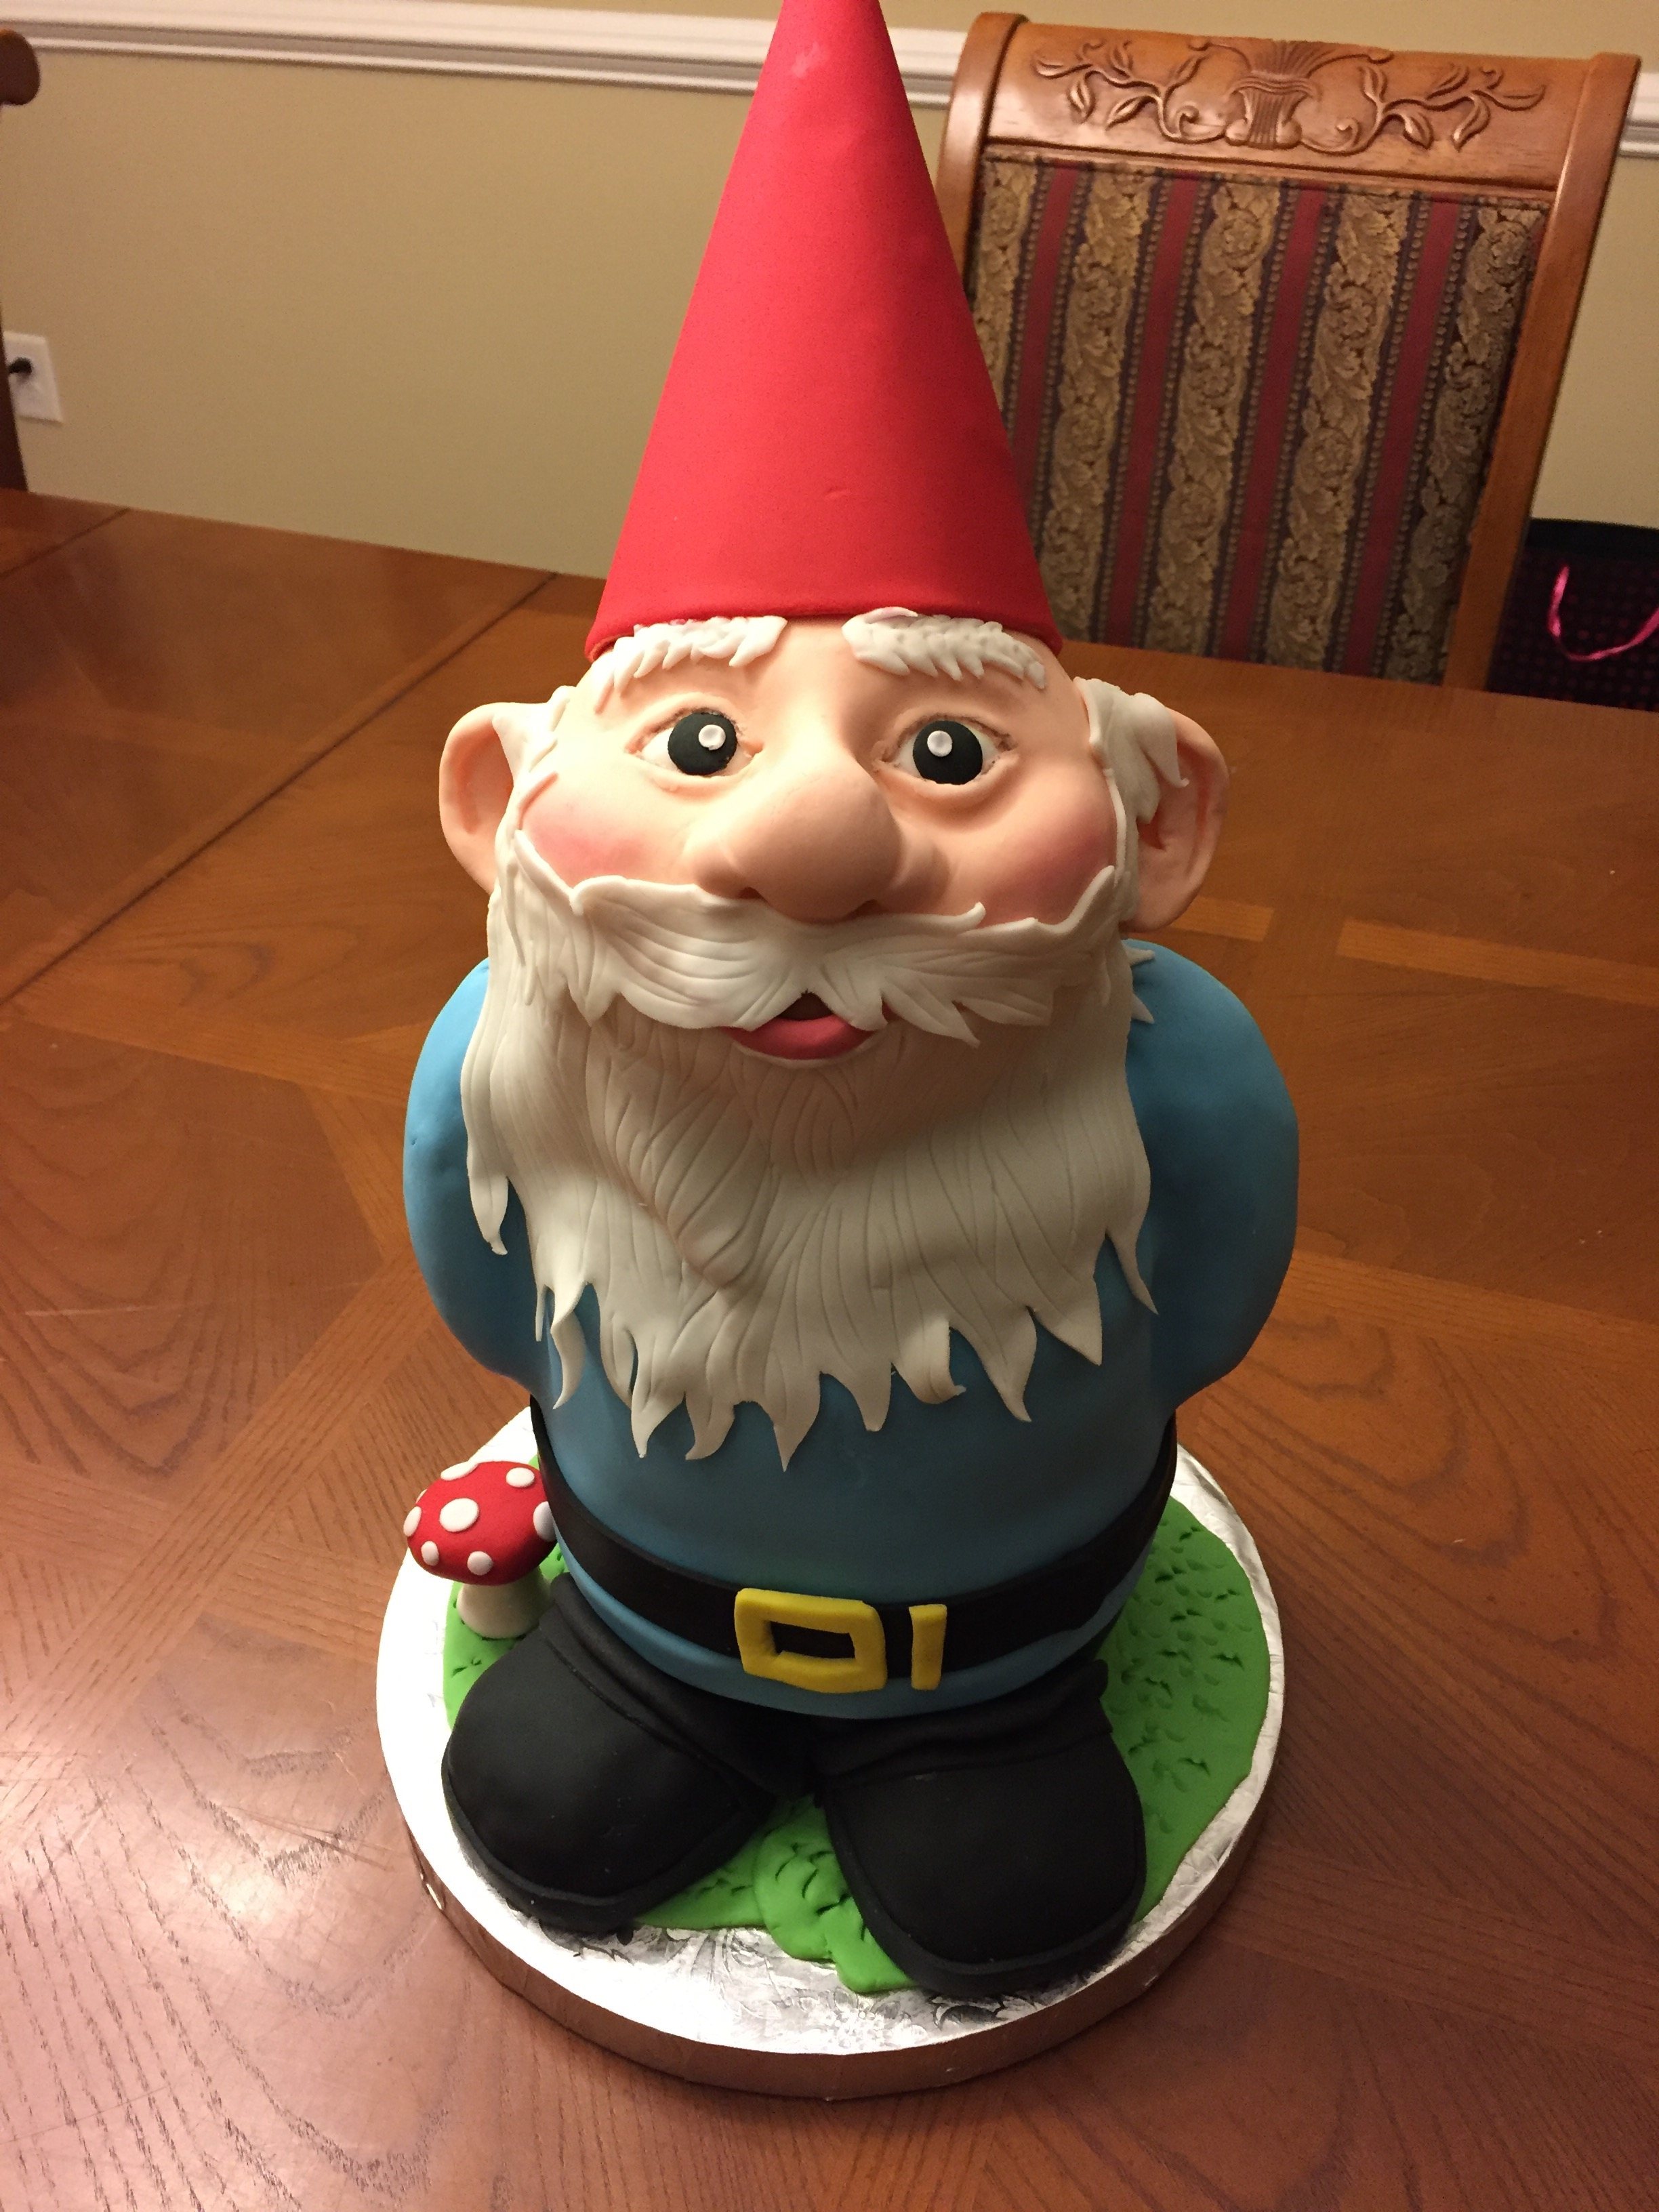 "Gnome Cake This is tall cake (17"") made of red velvet with cream cheese frosting. The body is cake and the arms, legs, and head are cereal treats..."